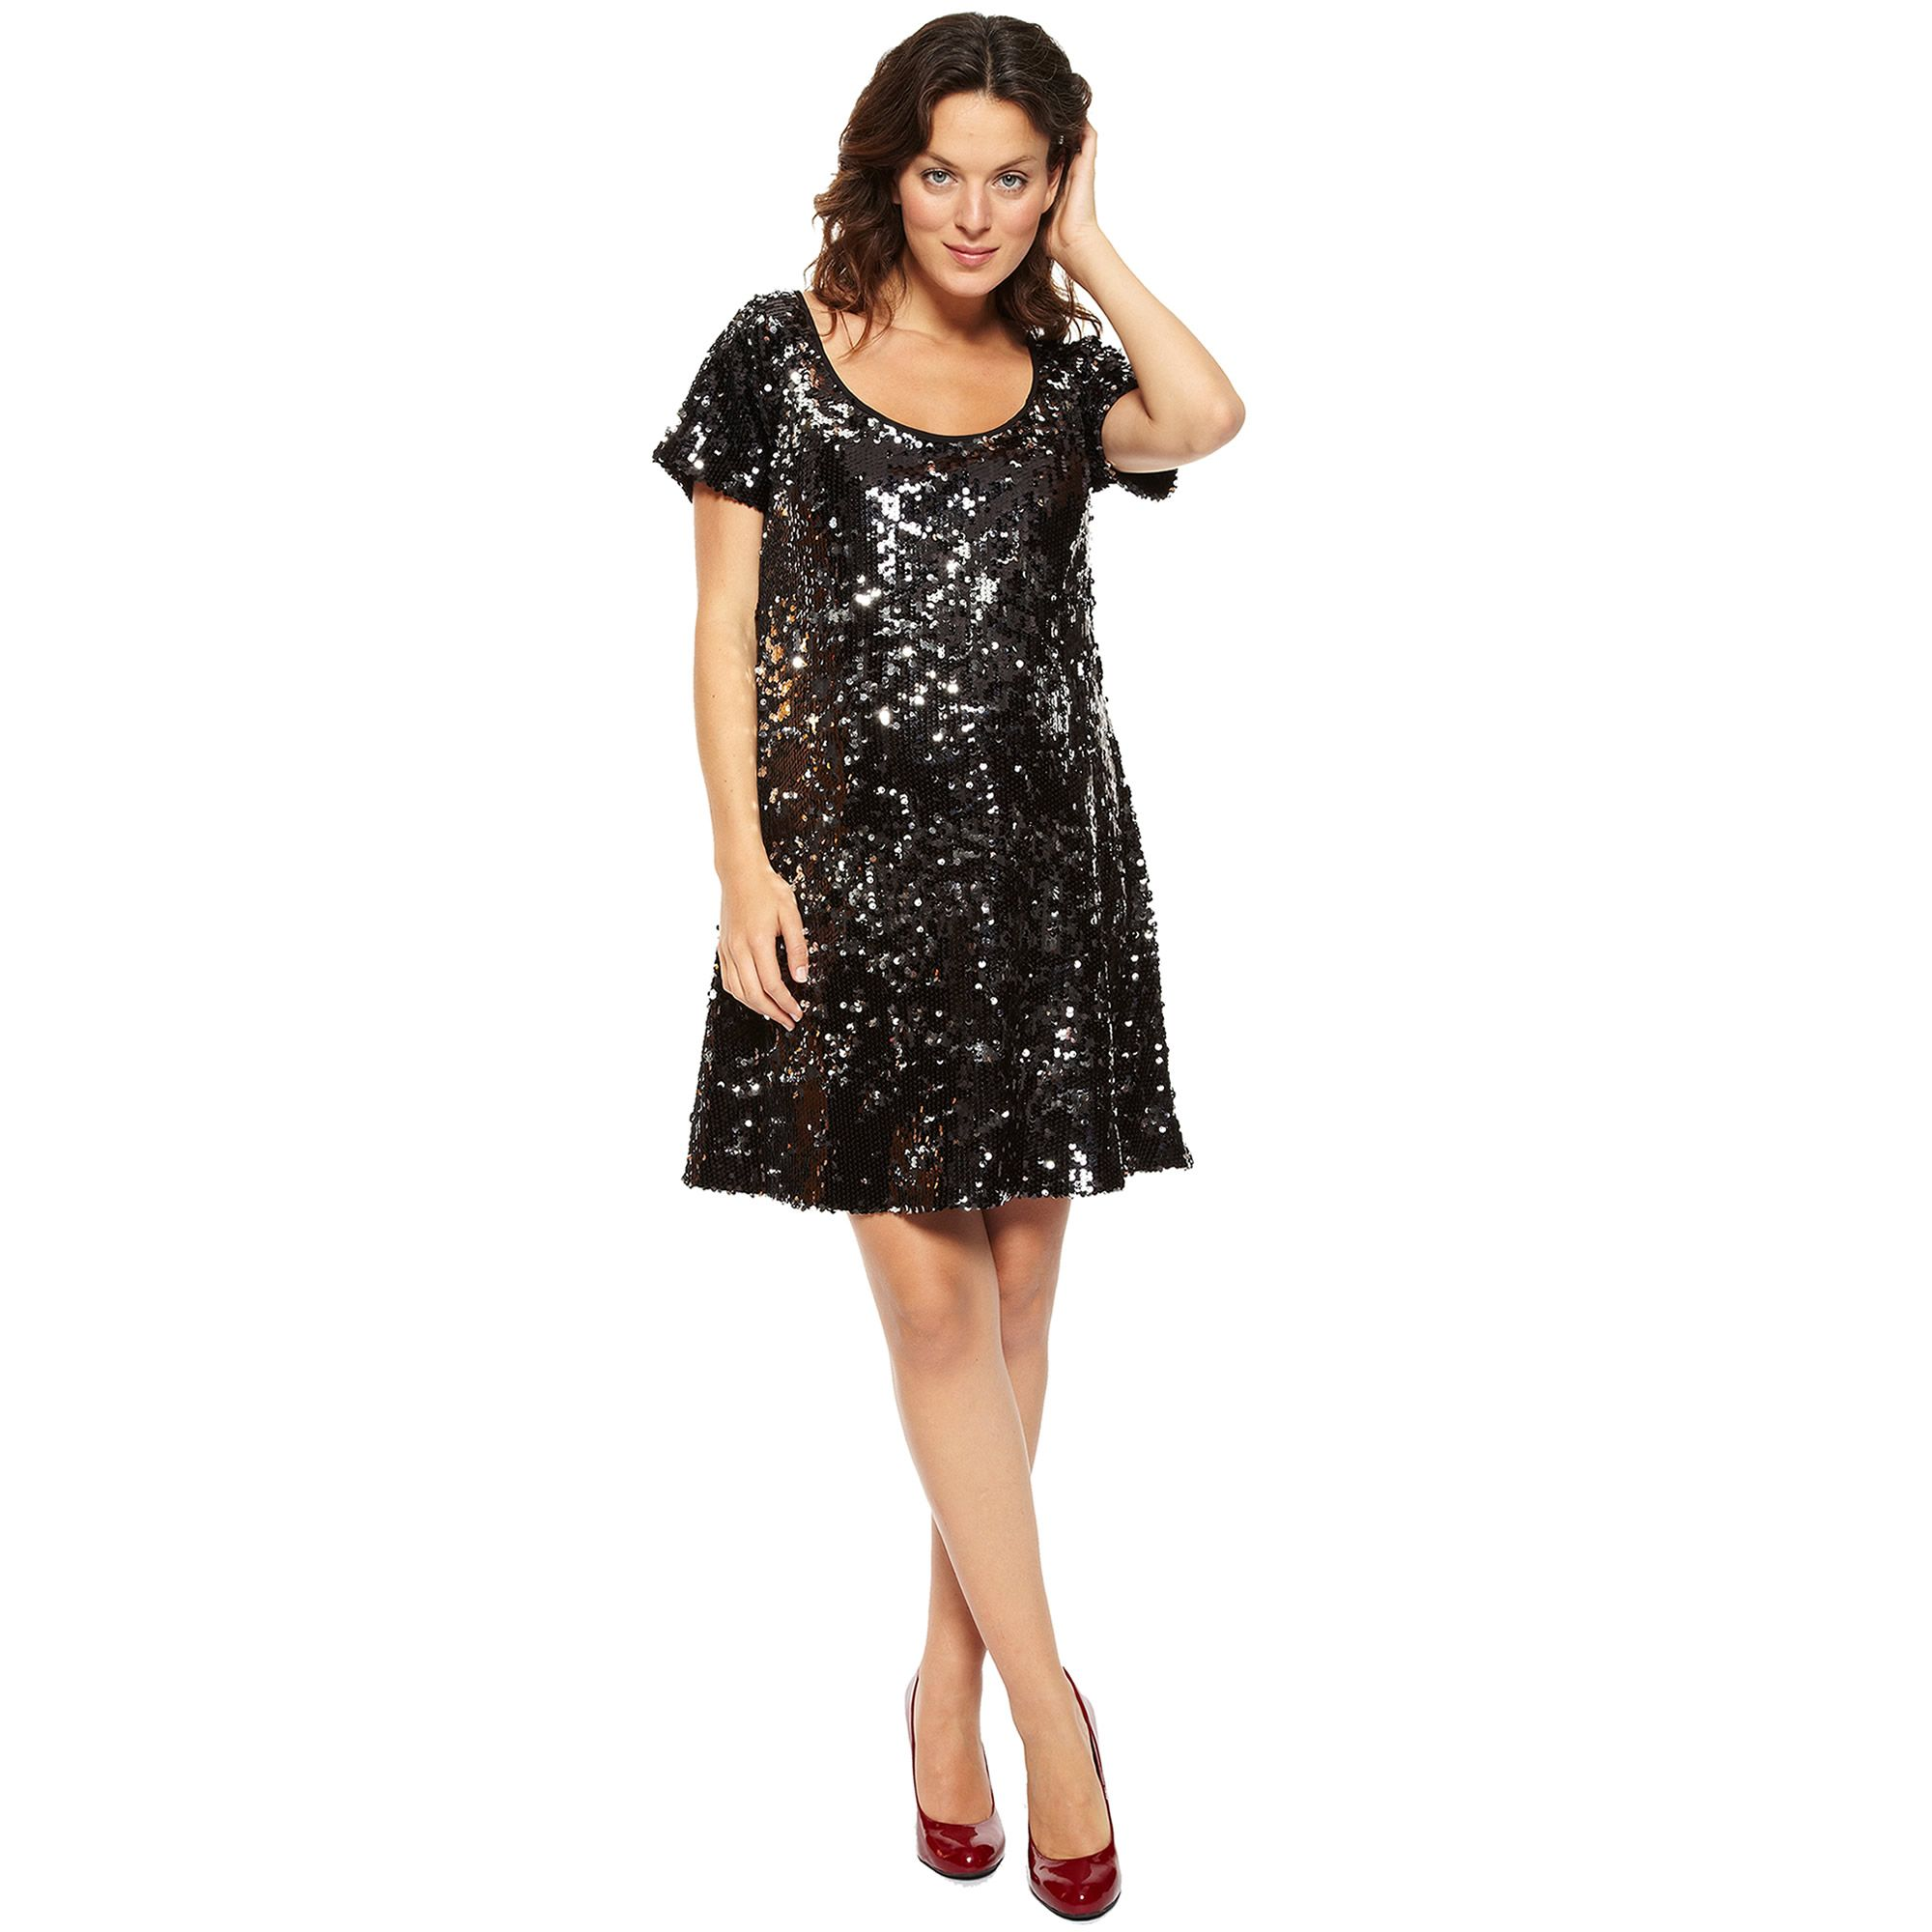 More of me sequin party dress great for a holiday party more of me sequin party dress great for a holiday party maternity ombrellifo Gallery